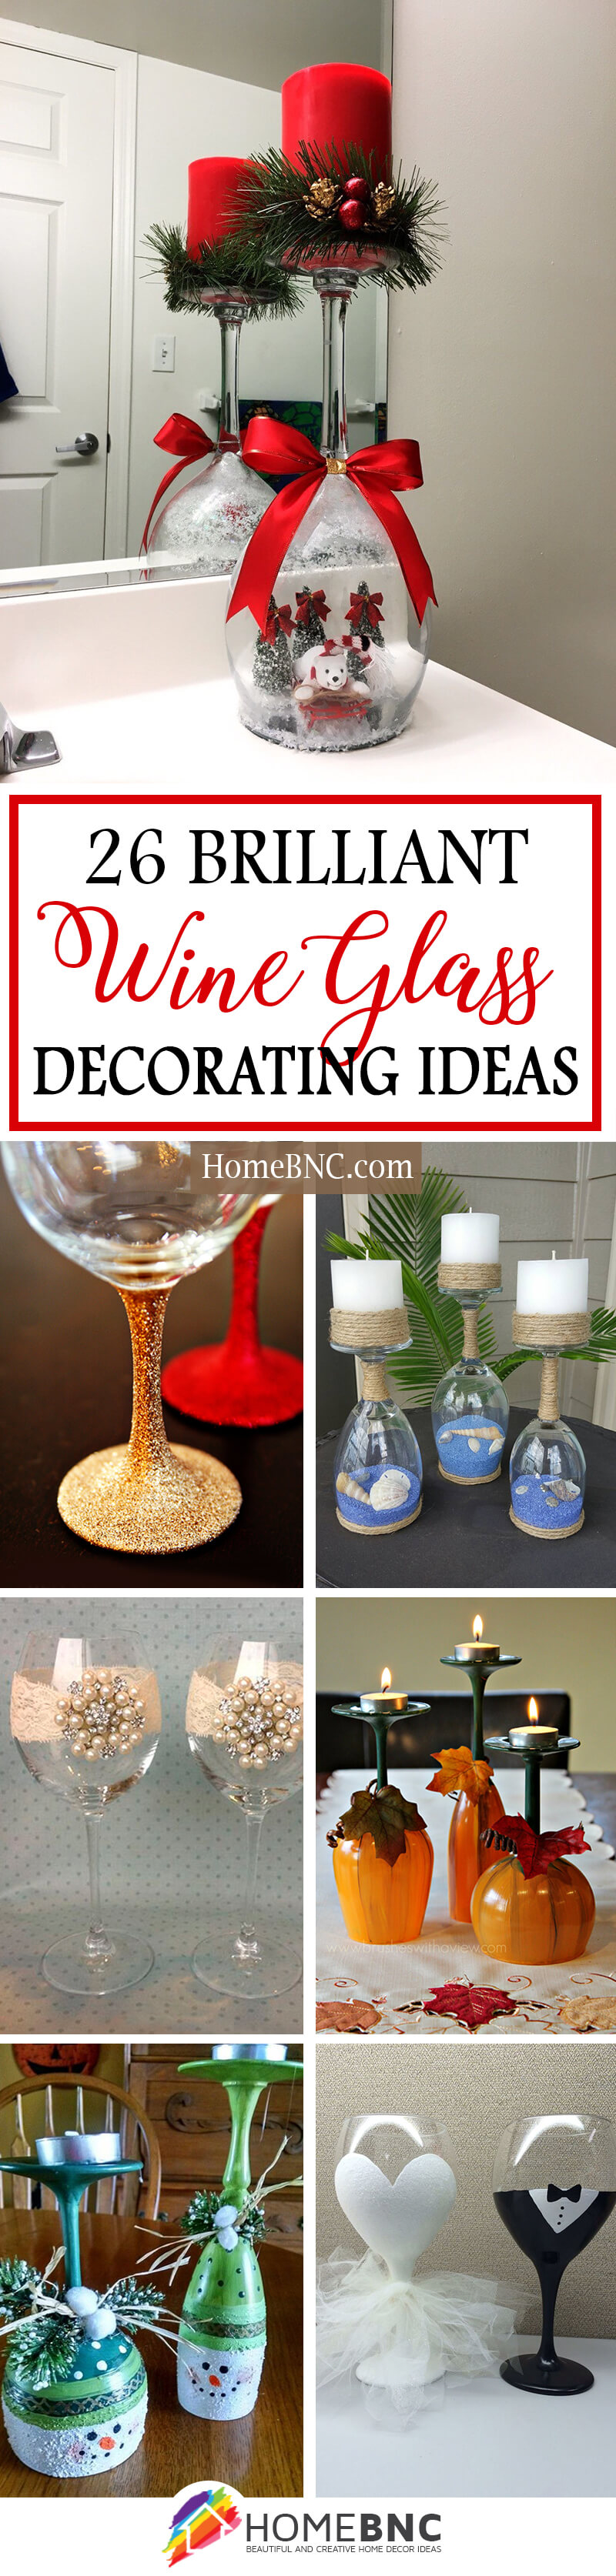 wine glass design ideas - Wine Glass Design Ideas